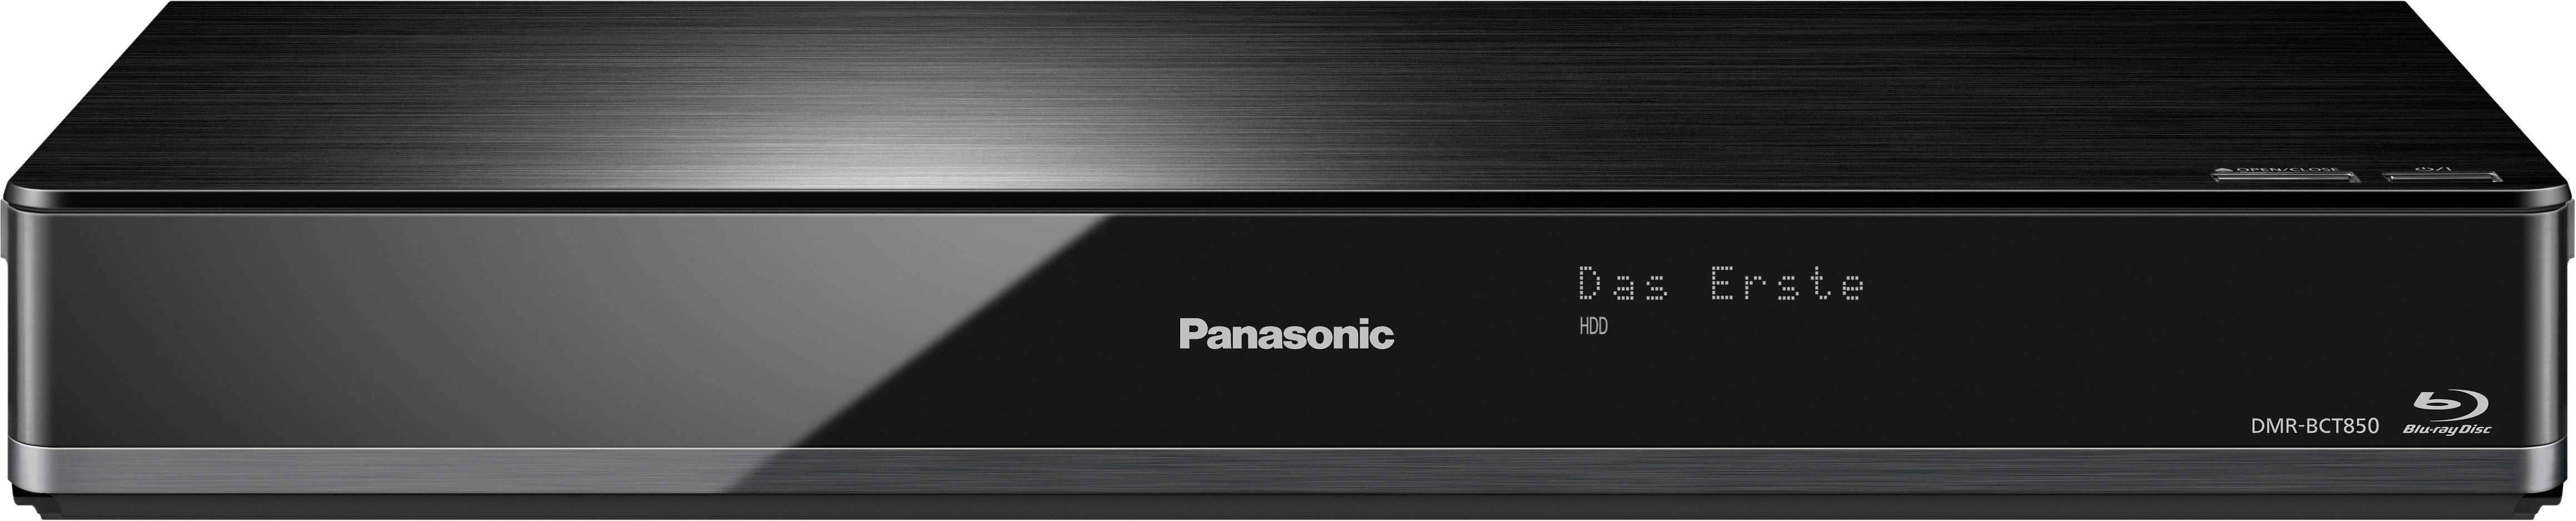 Panasonic DMR-BCT850EG Blu-ray-Recorder, 3D-fähig, 4K (Ultra-HD), 1000 GB, WLAN